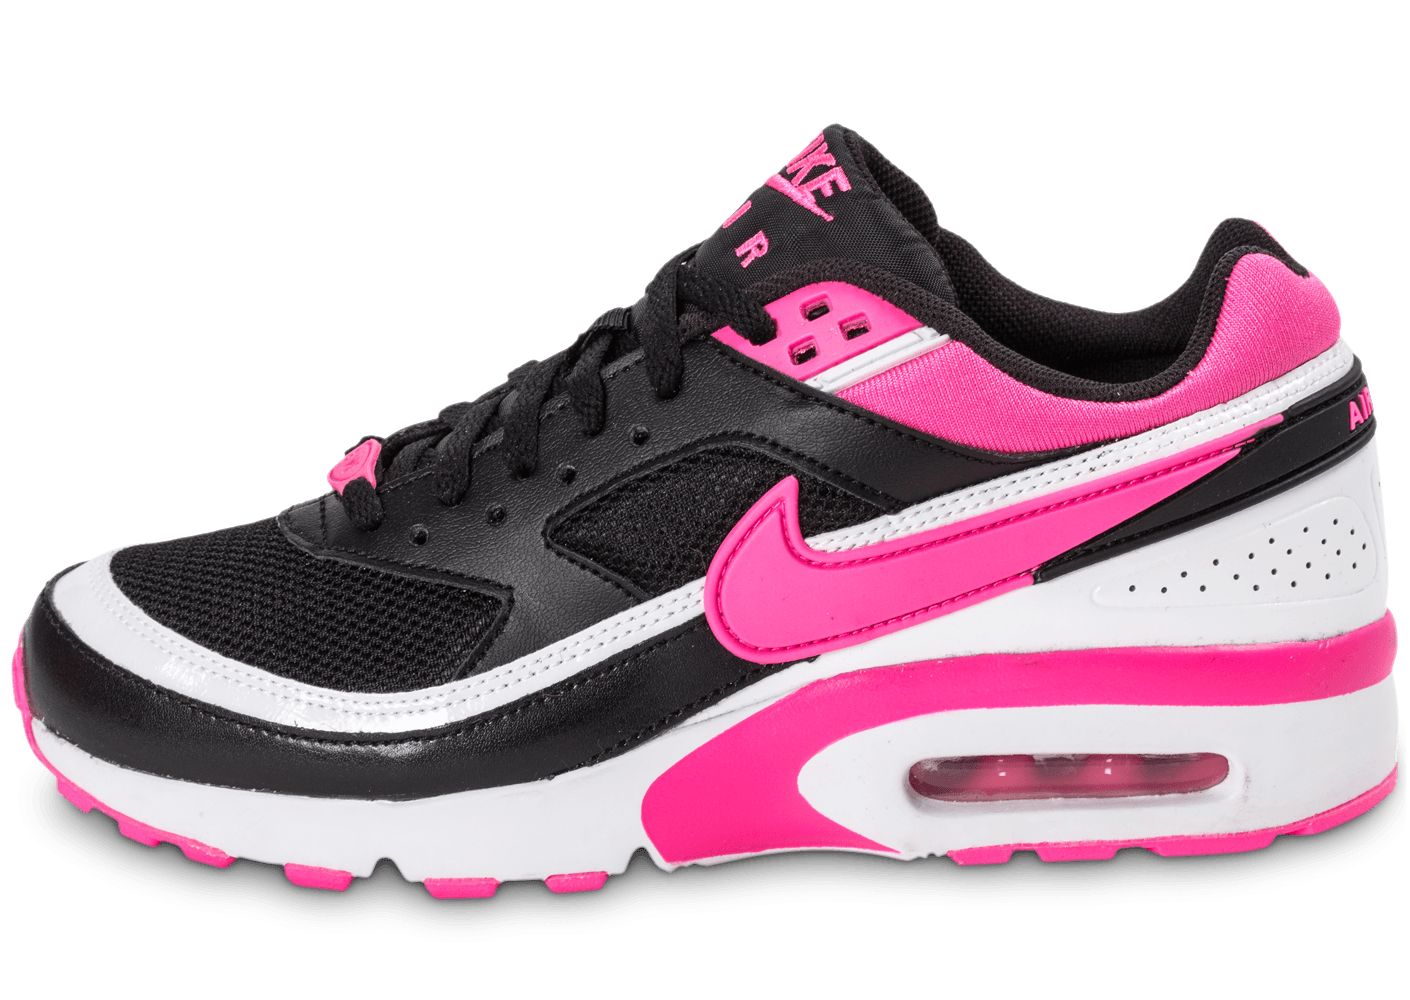 Nike Chaussures Max Bw Blanc Femme Air Rose 2001 Iqwr5IFxW